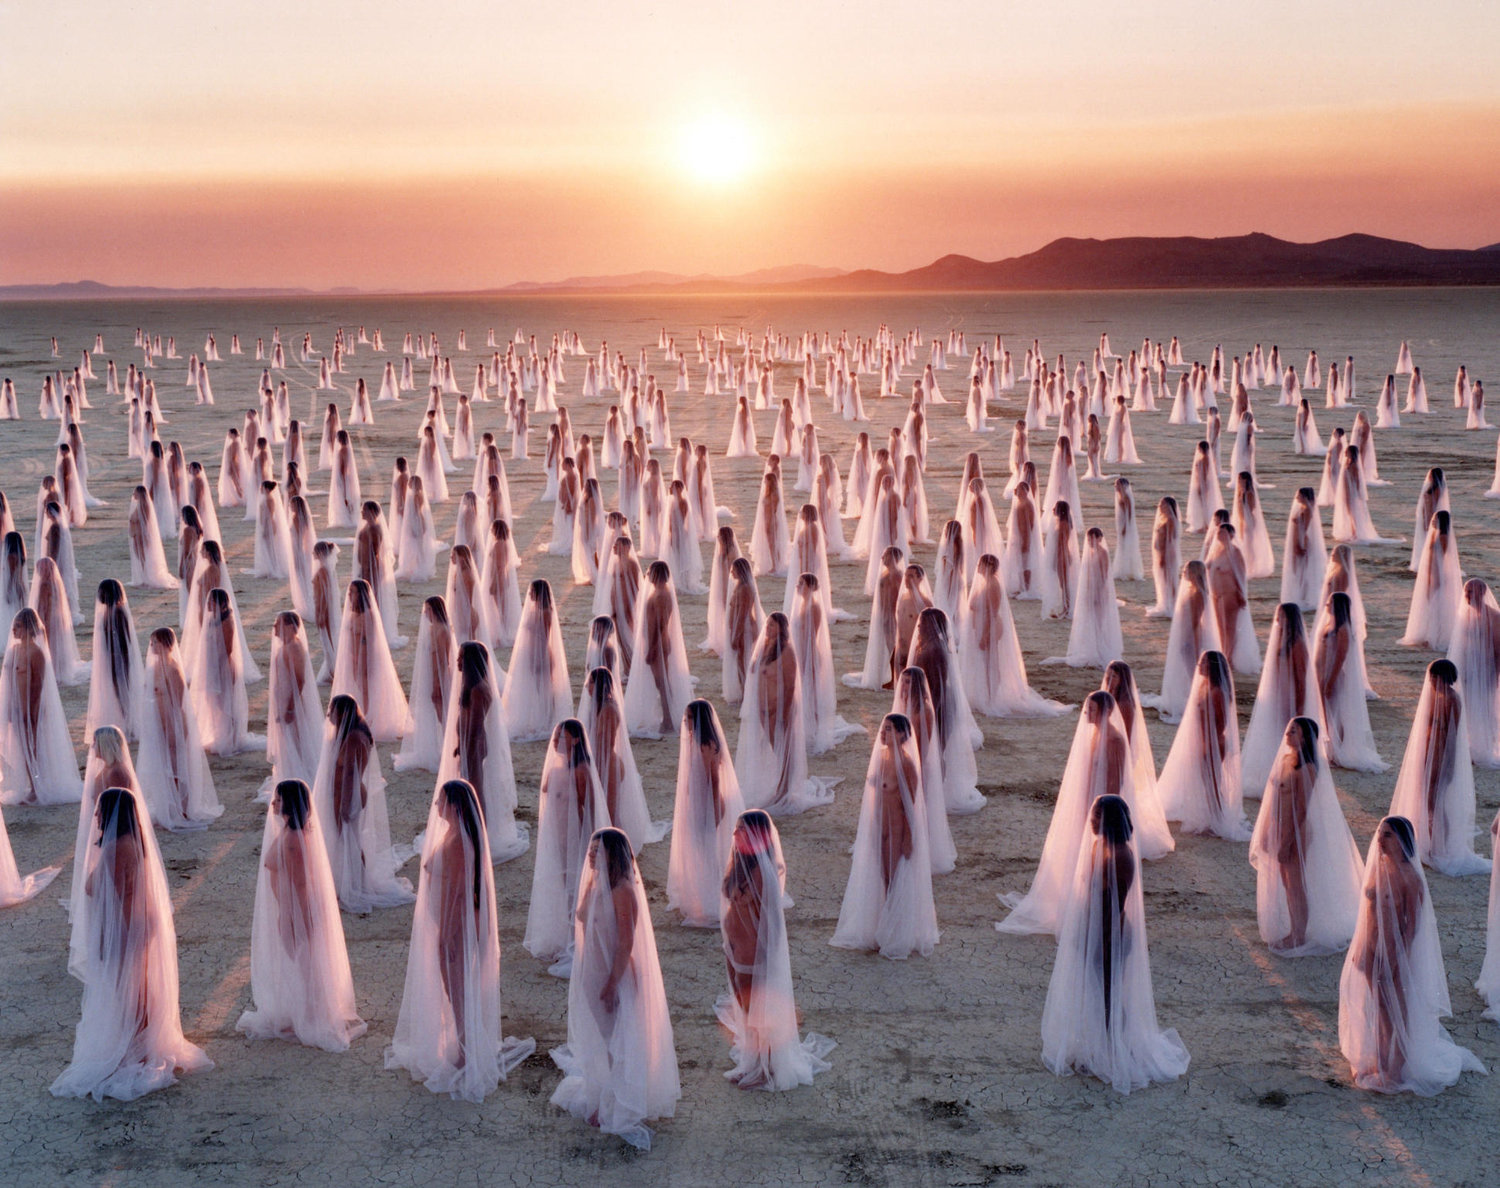 Over a career spanning more than 25 years, Tunick has staged 125 mass nude installations in 25 countries, photographing tens of thousands of volunteers in their birthday suits. He has been arrested for it five times.  Critics say he's a one-trick pony chasing publicity; fans say his work transcends difference and foregrounds the humanity in our industrialised lives.  Either way his popularity is undeniable, with those who model for him saying it's liberating and unforgettable. None of them gets paid but everyone receives a print of the photograph in which they appear.